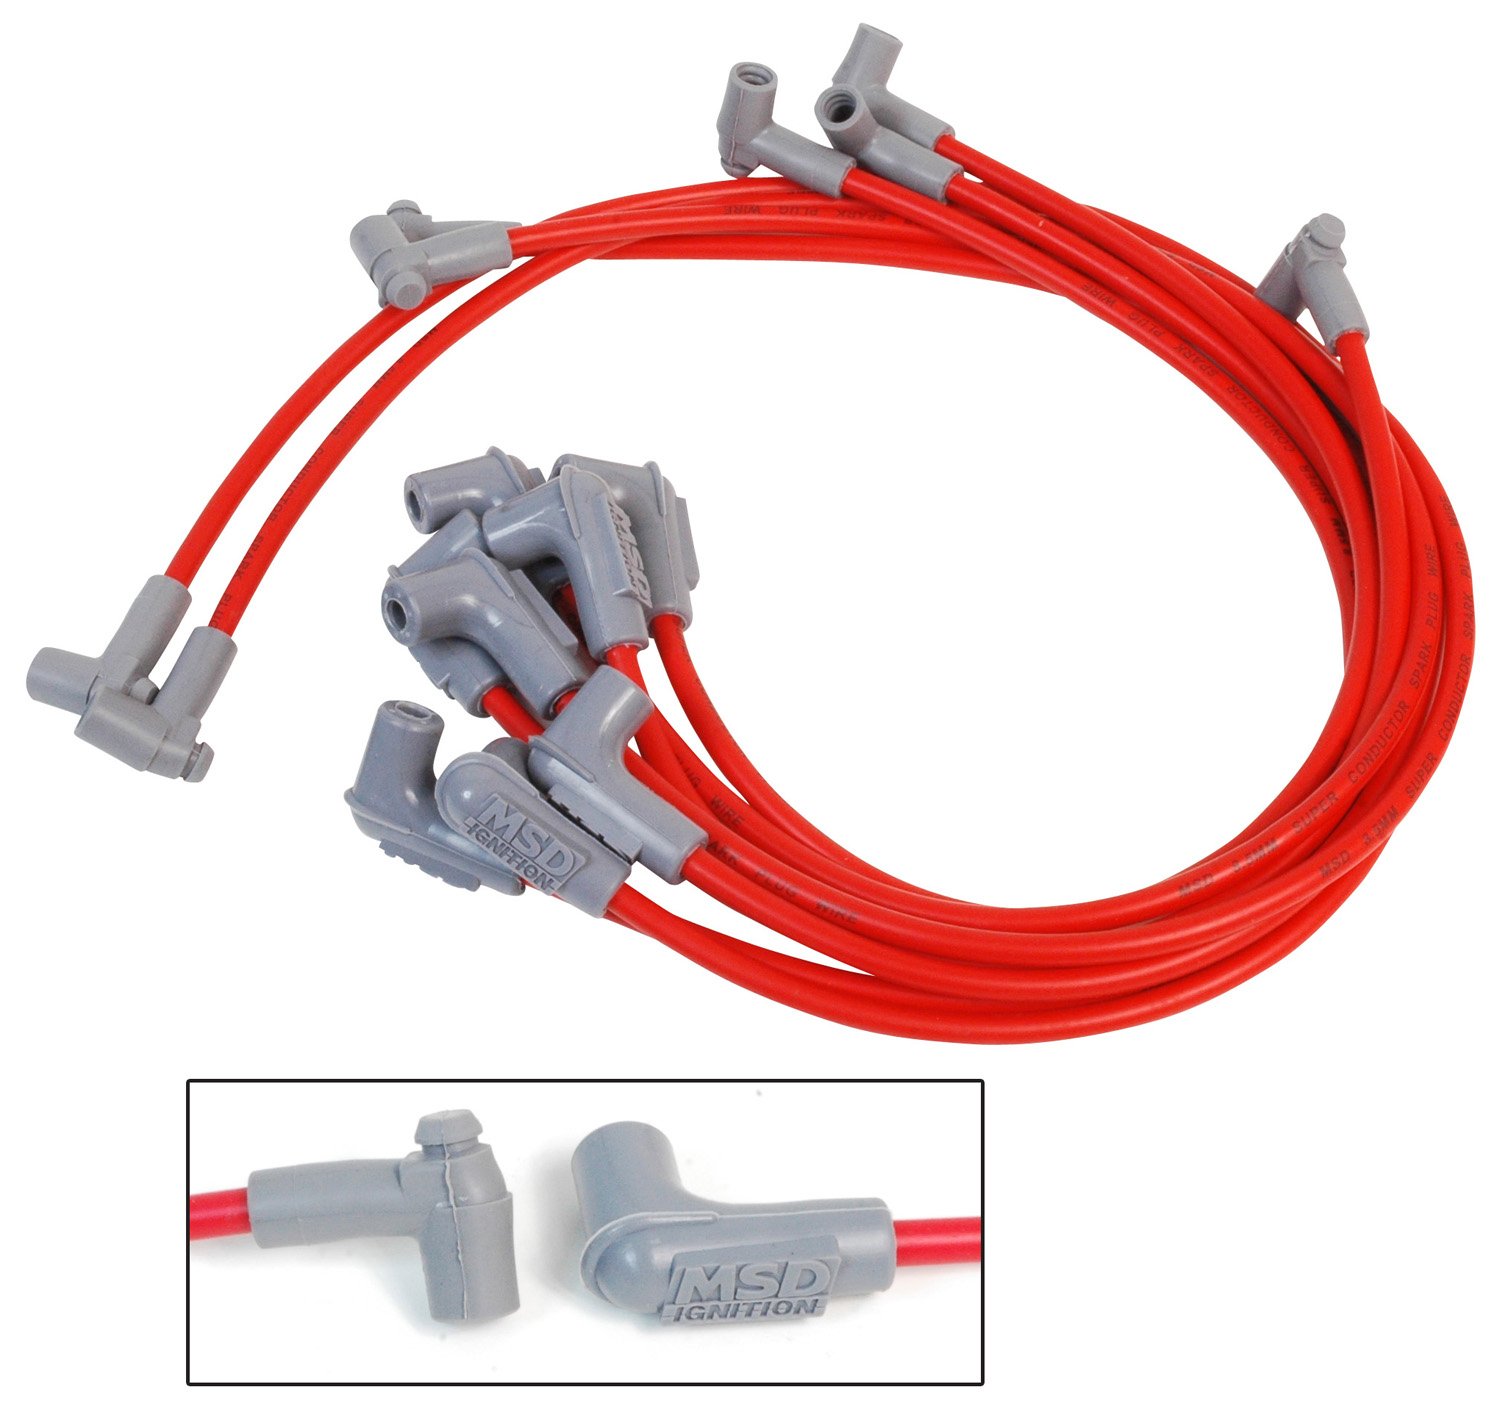 Shop For Msd Ignition Spark Plug Wires Performance Auto Gm Small Cap Hei Wiring Sbc Over The V C Red